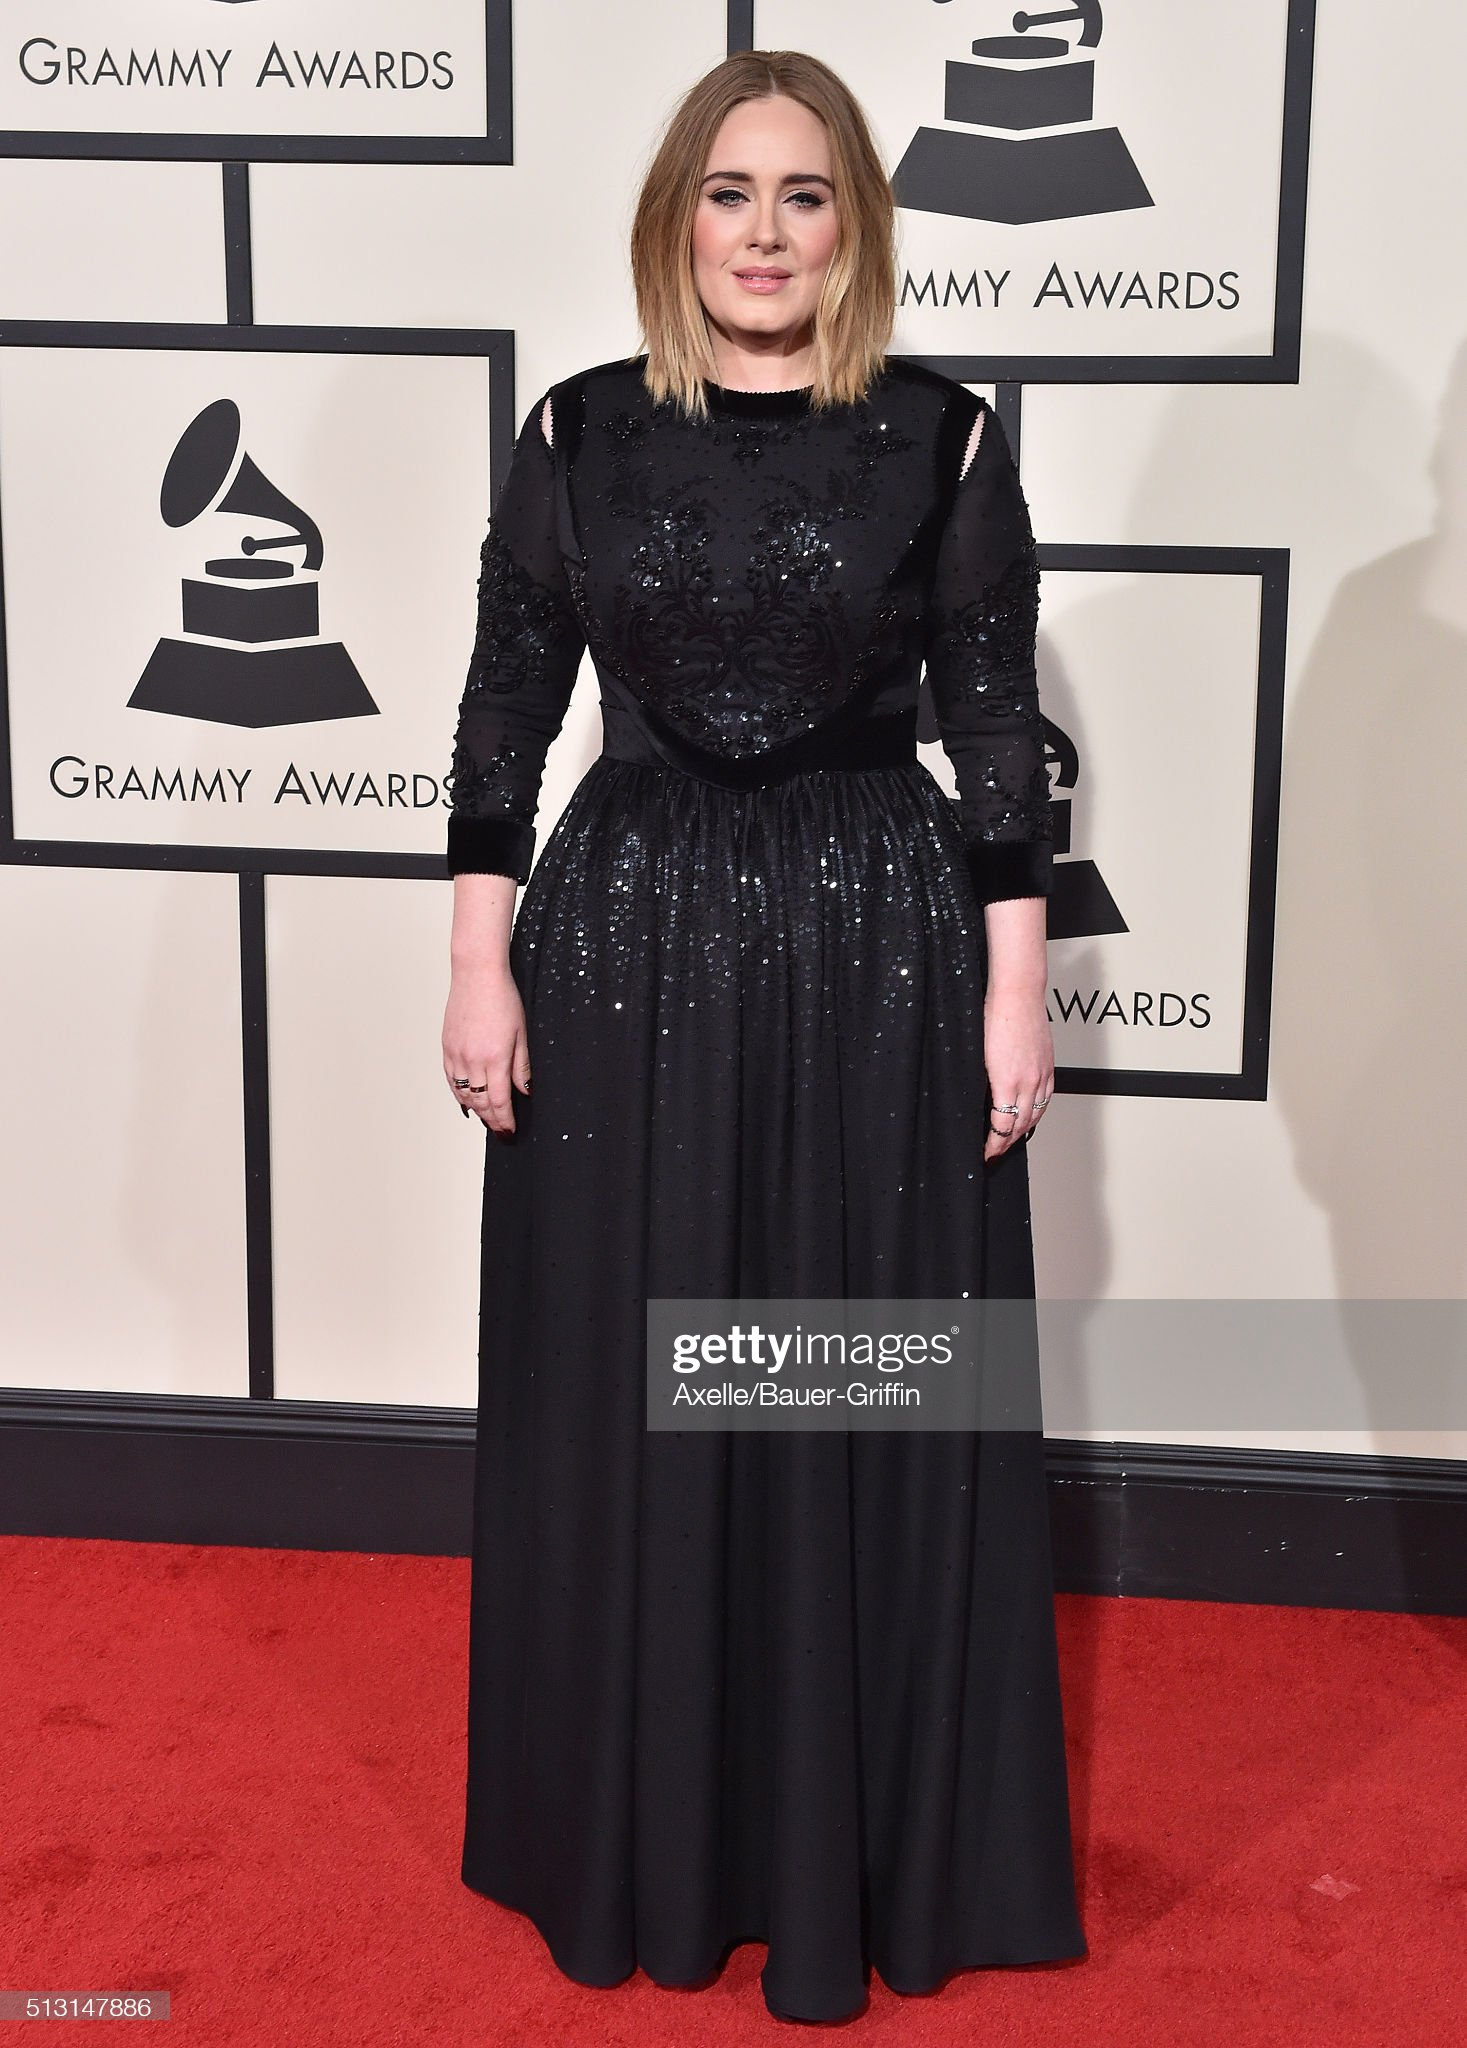 ¿Cuánto mide Adele? - Altura - Real height Singer-adele-arrives-at-the-58th-grammy-awards-at-staples-center-on-picture-id513147886?s=2048x2048